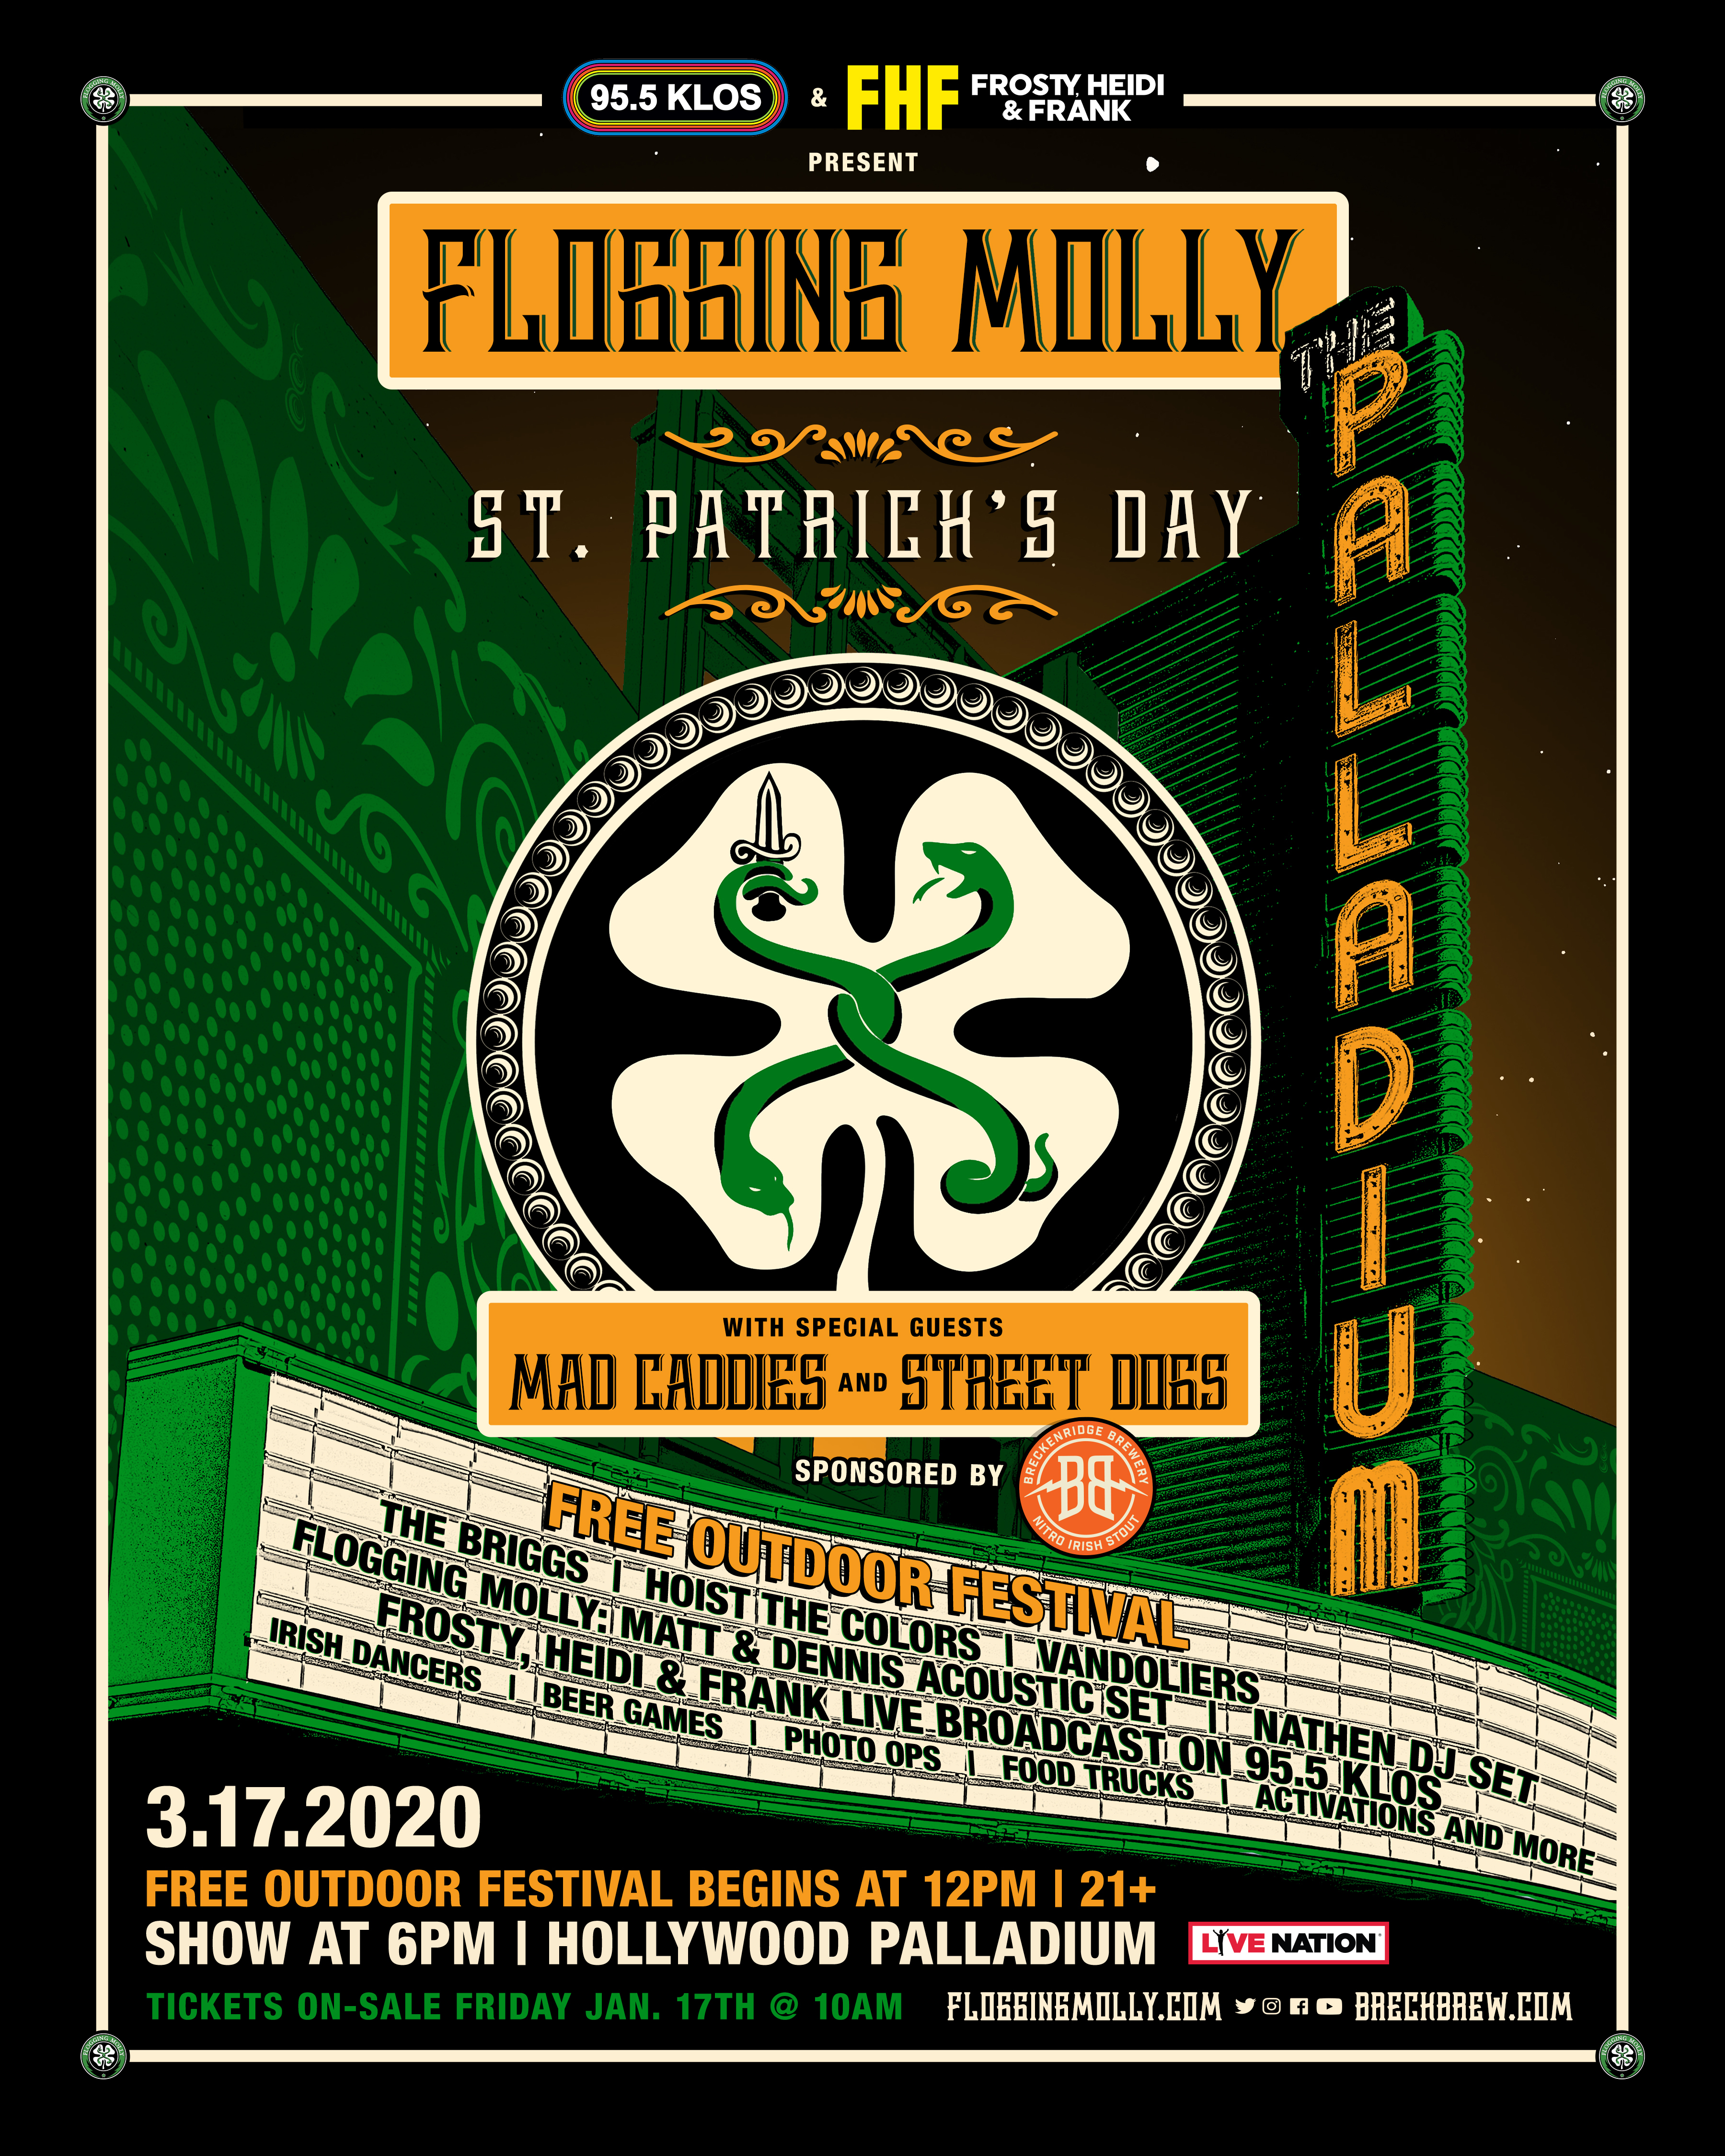 Flogging Molly play The Palladium in L.A.